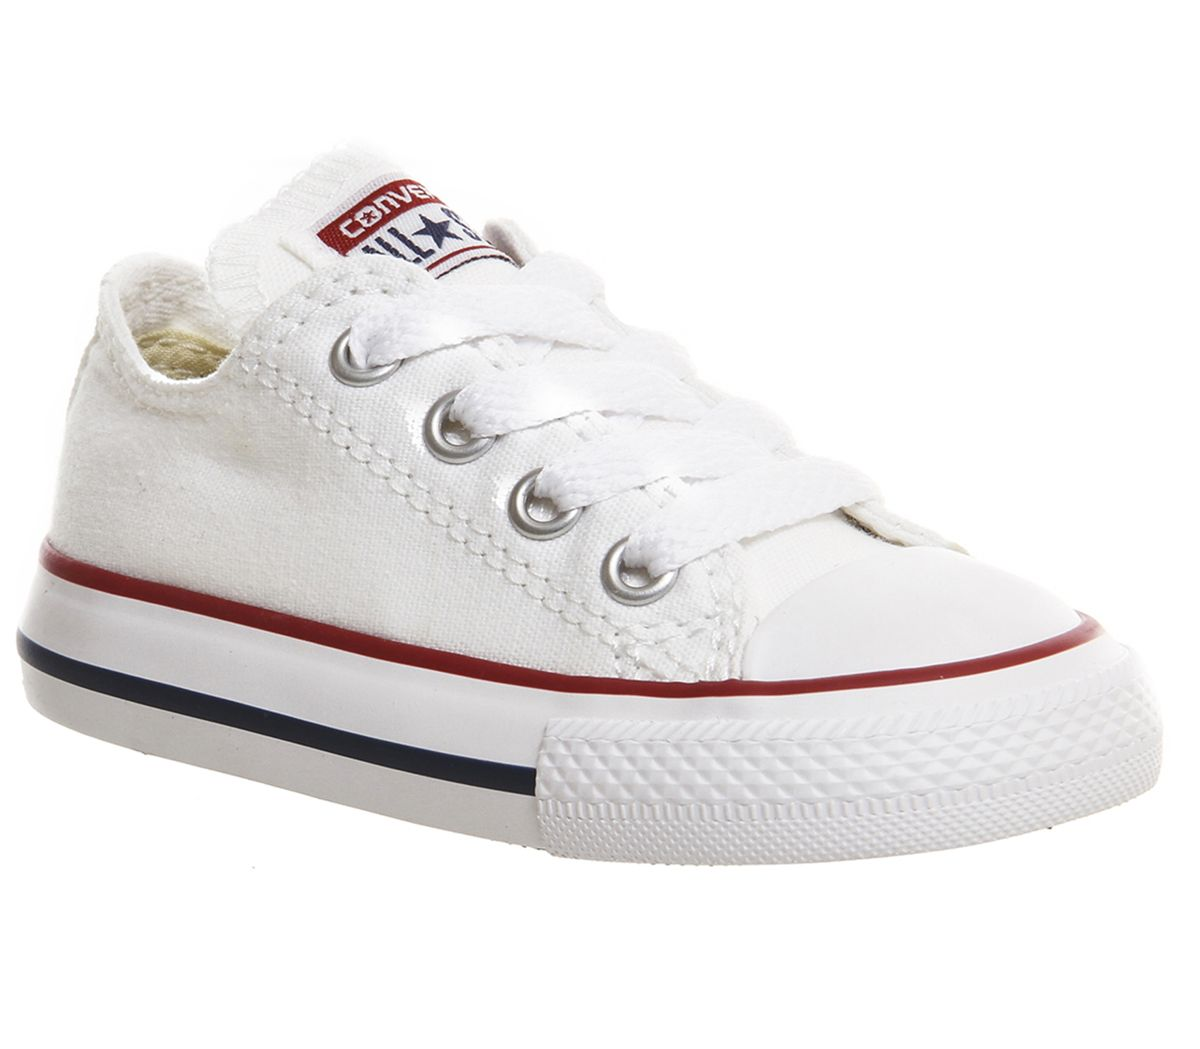 converse all star x bambini